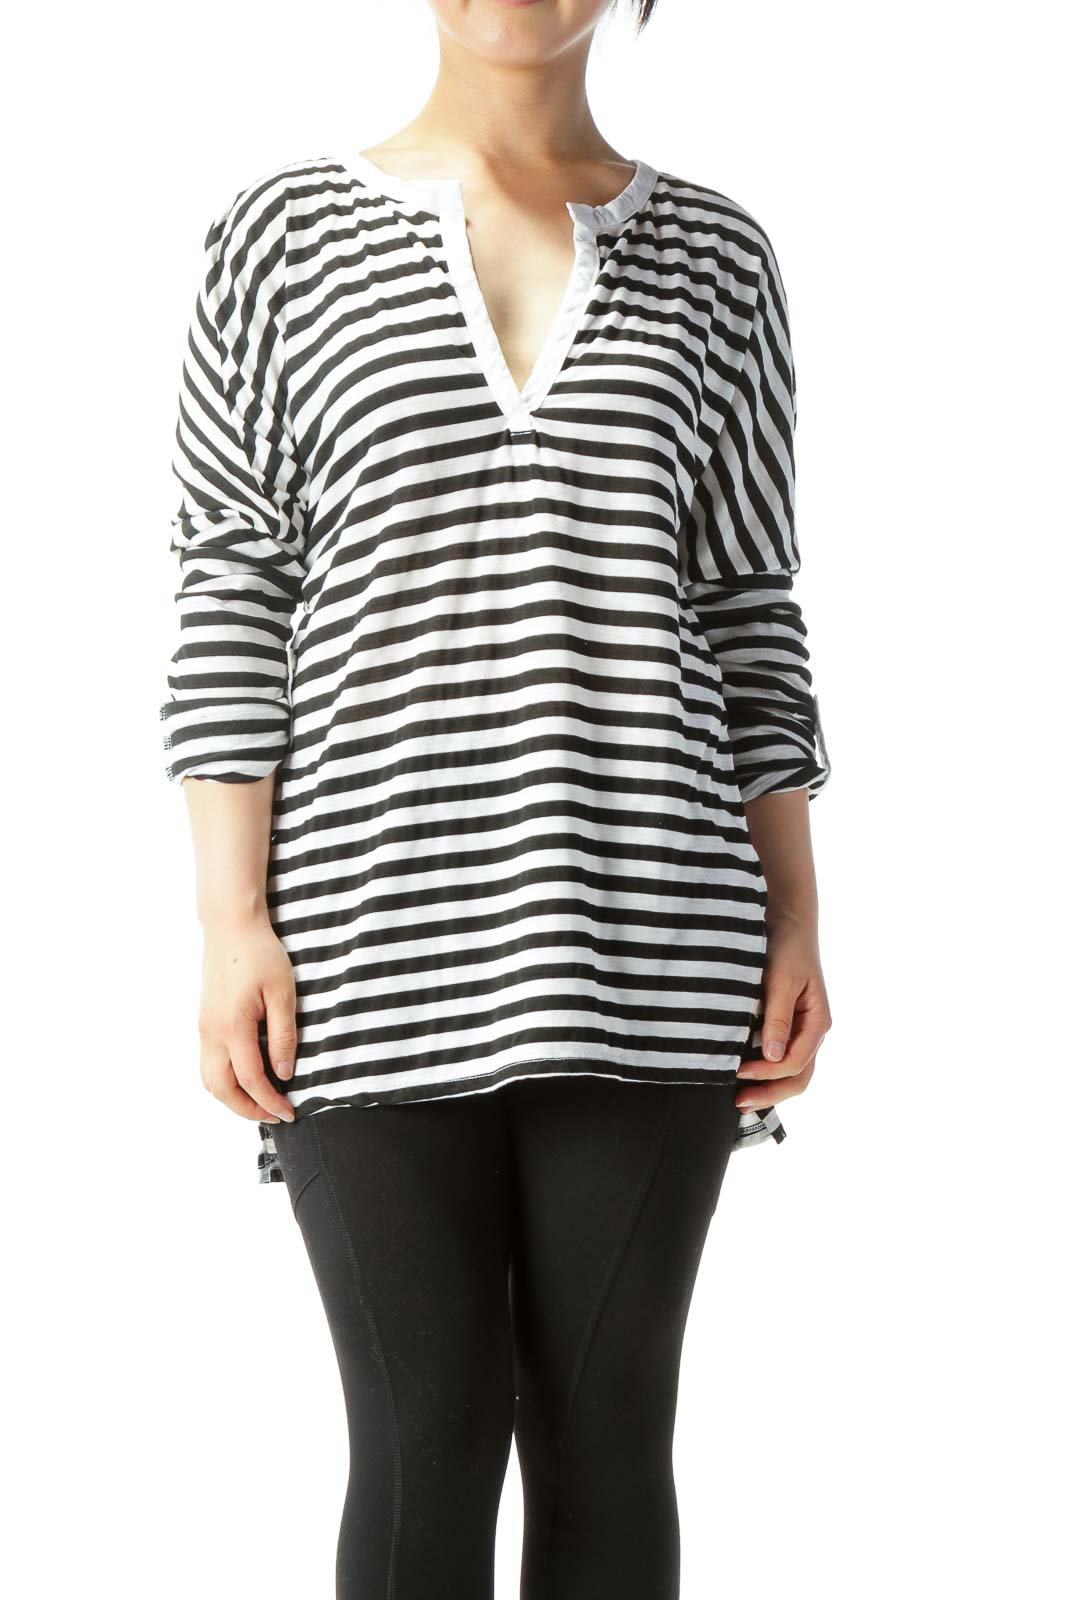 White & Black Striped Long-Sleeve Rolled-Cuff Knit Top